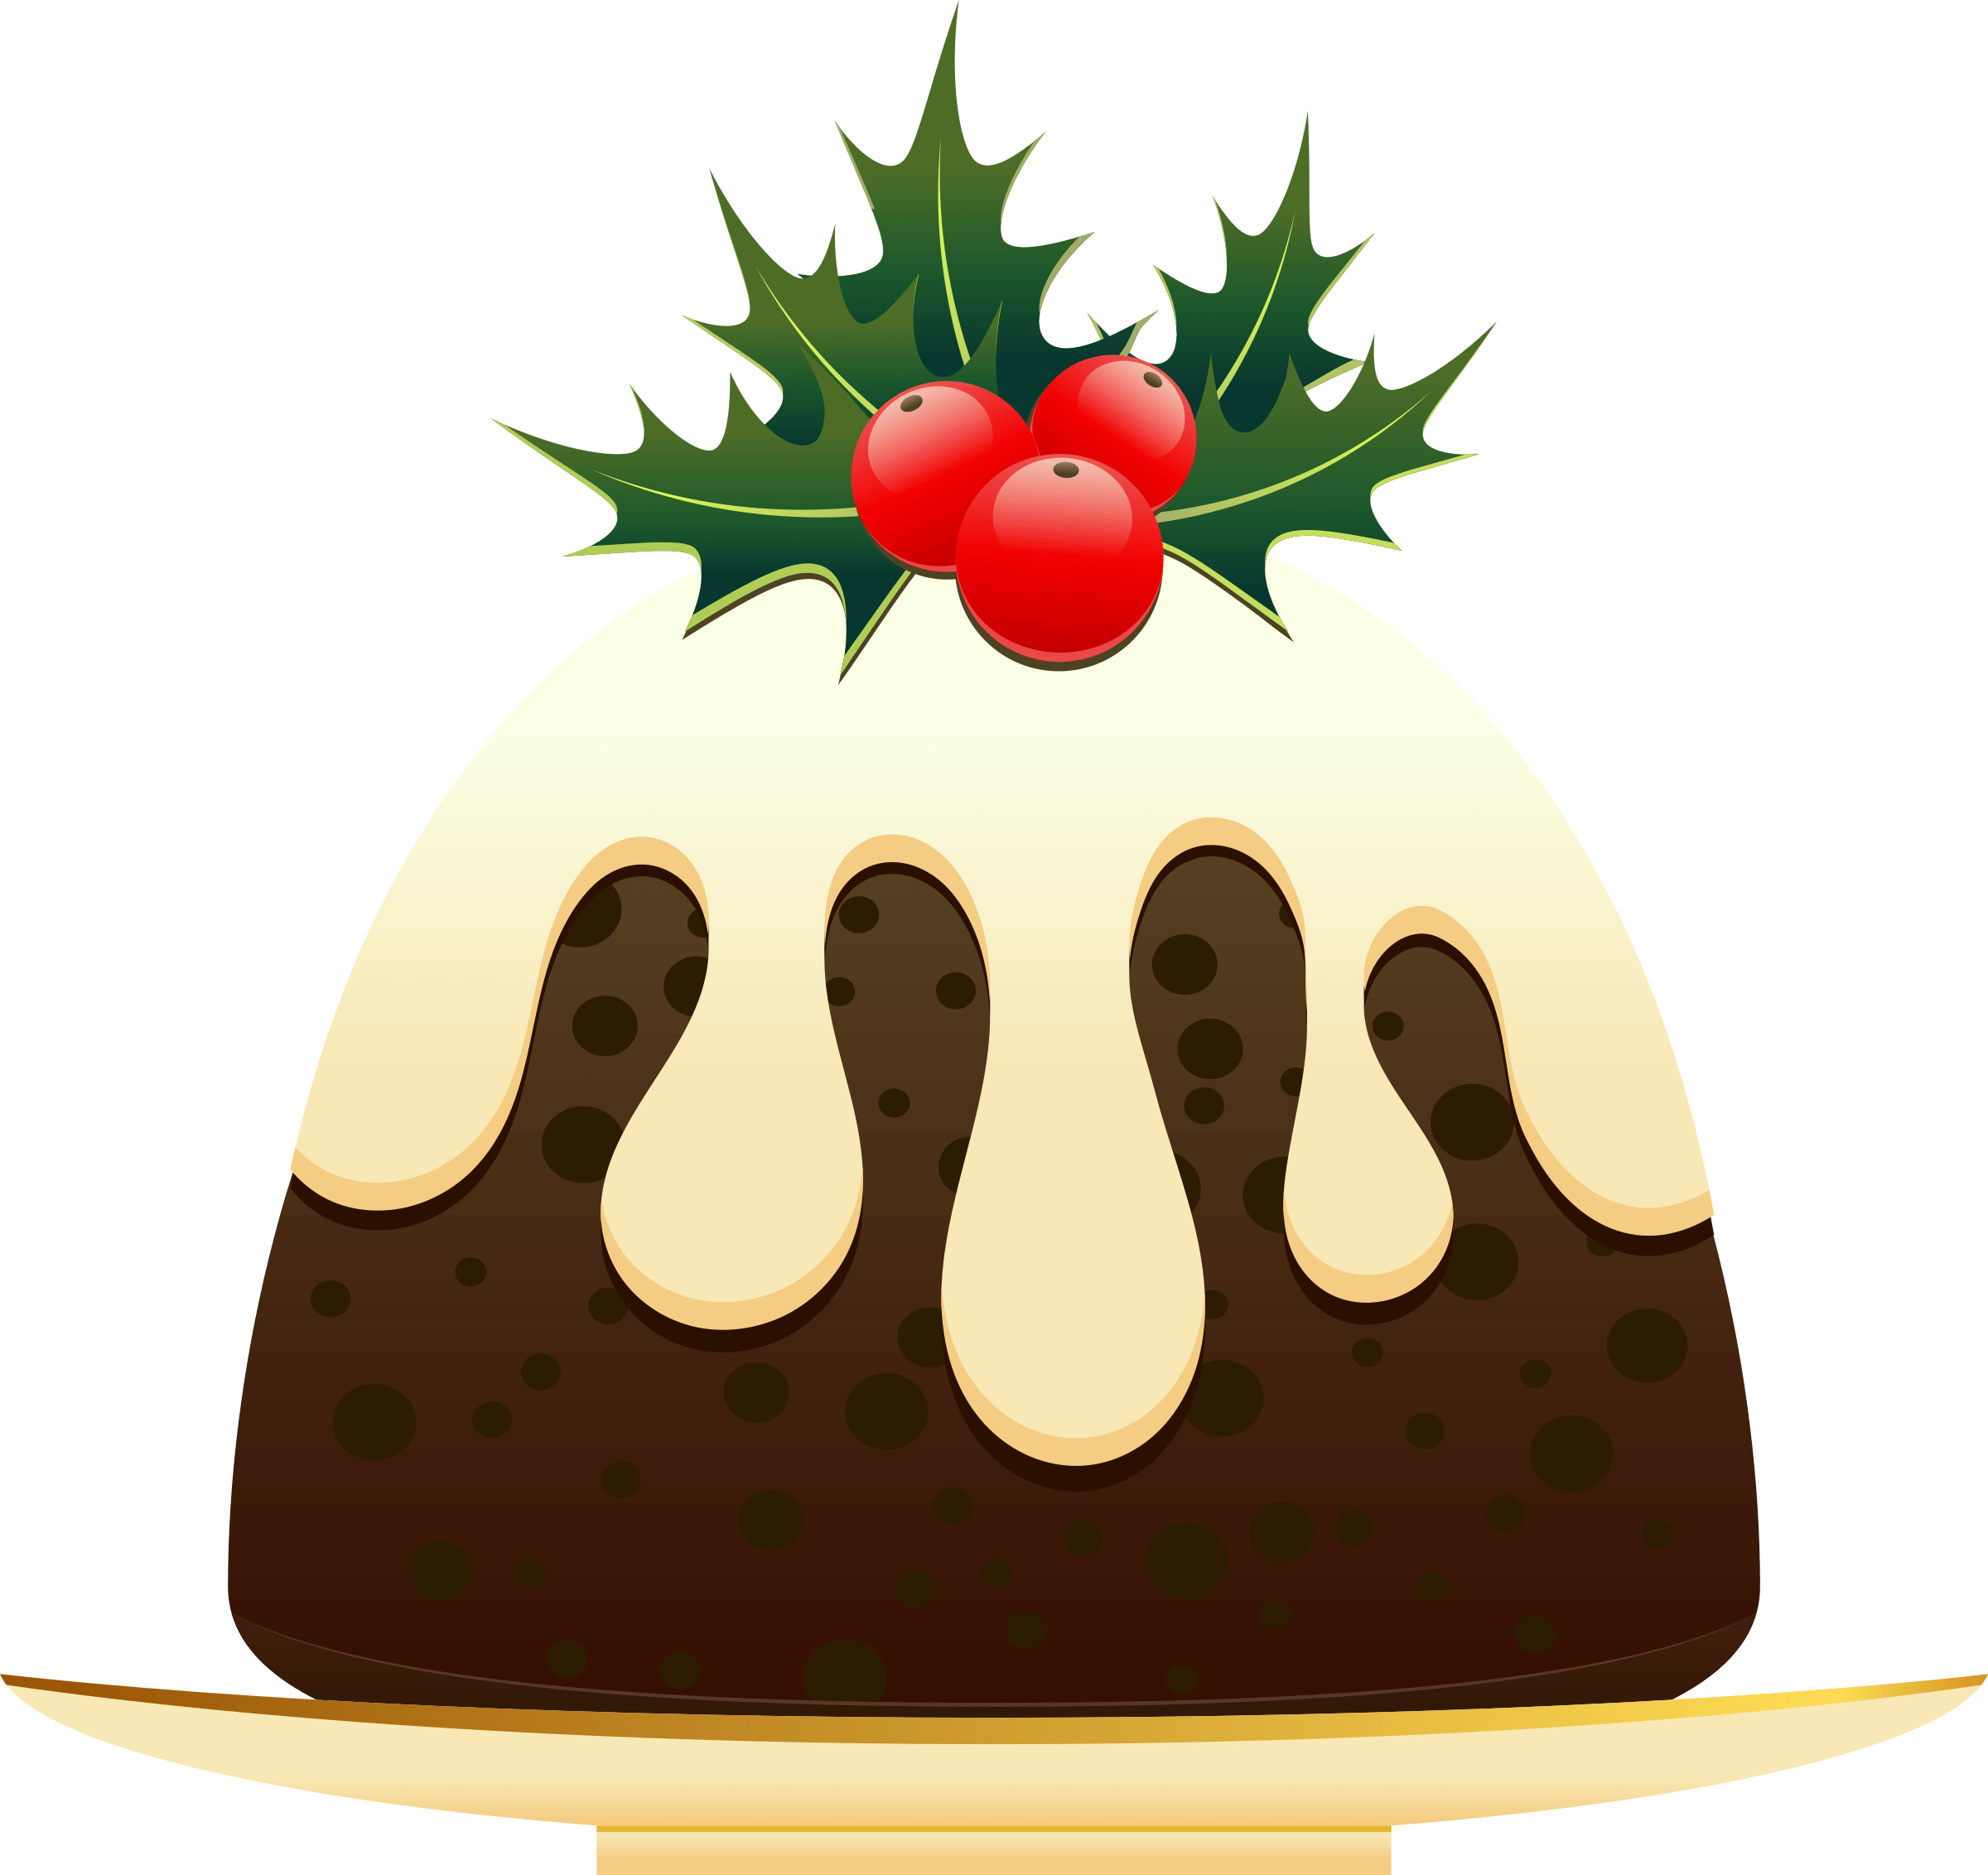 Christmas Cakes Images Free